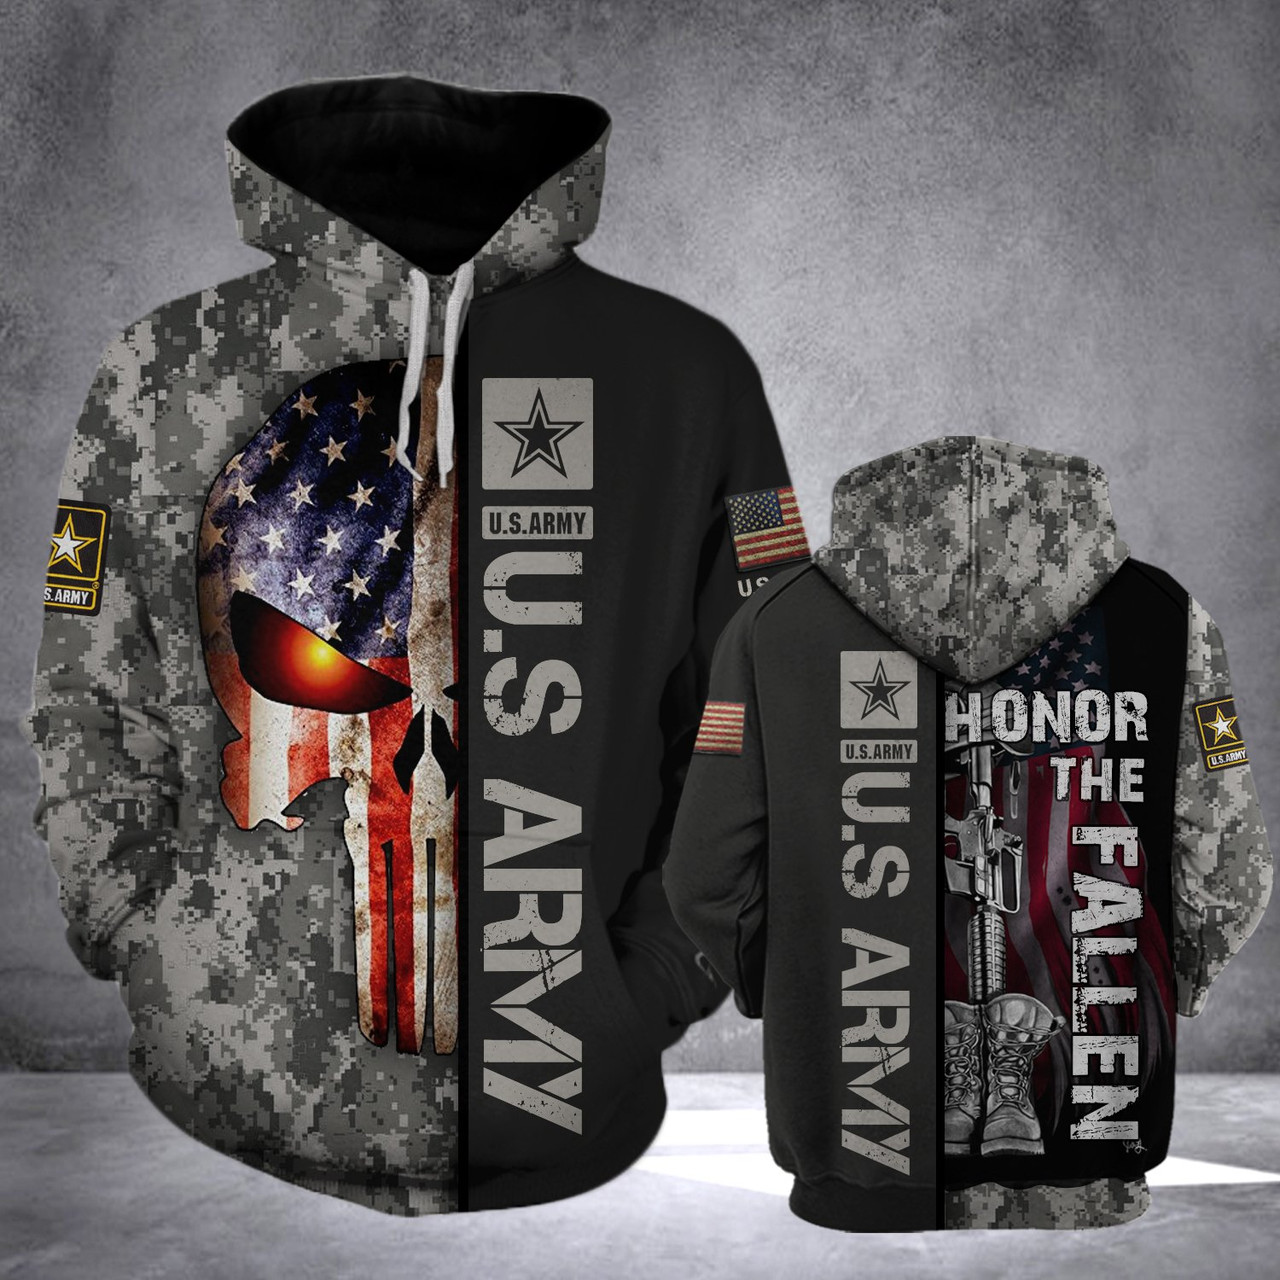 **(OFFICIAL-U.S.ARMY-VETERAN-PULLOVER-HOODIES/CLASSIC-PATRIOTIC-PUNISHER-SKULL & CLASSIC-ARMY-DIGITAL-CAMO.DESIGN & OFFICIAL-ARMY-LOGOS/CUSTOM-3D-DETAILED-GRAPHIC-PRINTED/DOUBLE-SIDED-ALL-OVER-DESIGNED/WARM-PREMIUM-PULLOVER-U.S.ARMY-HOODIES)**